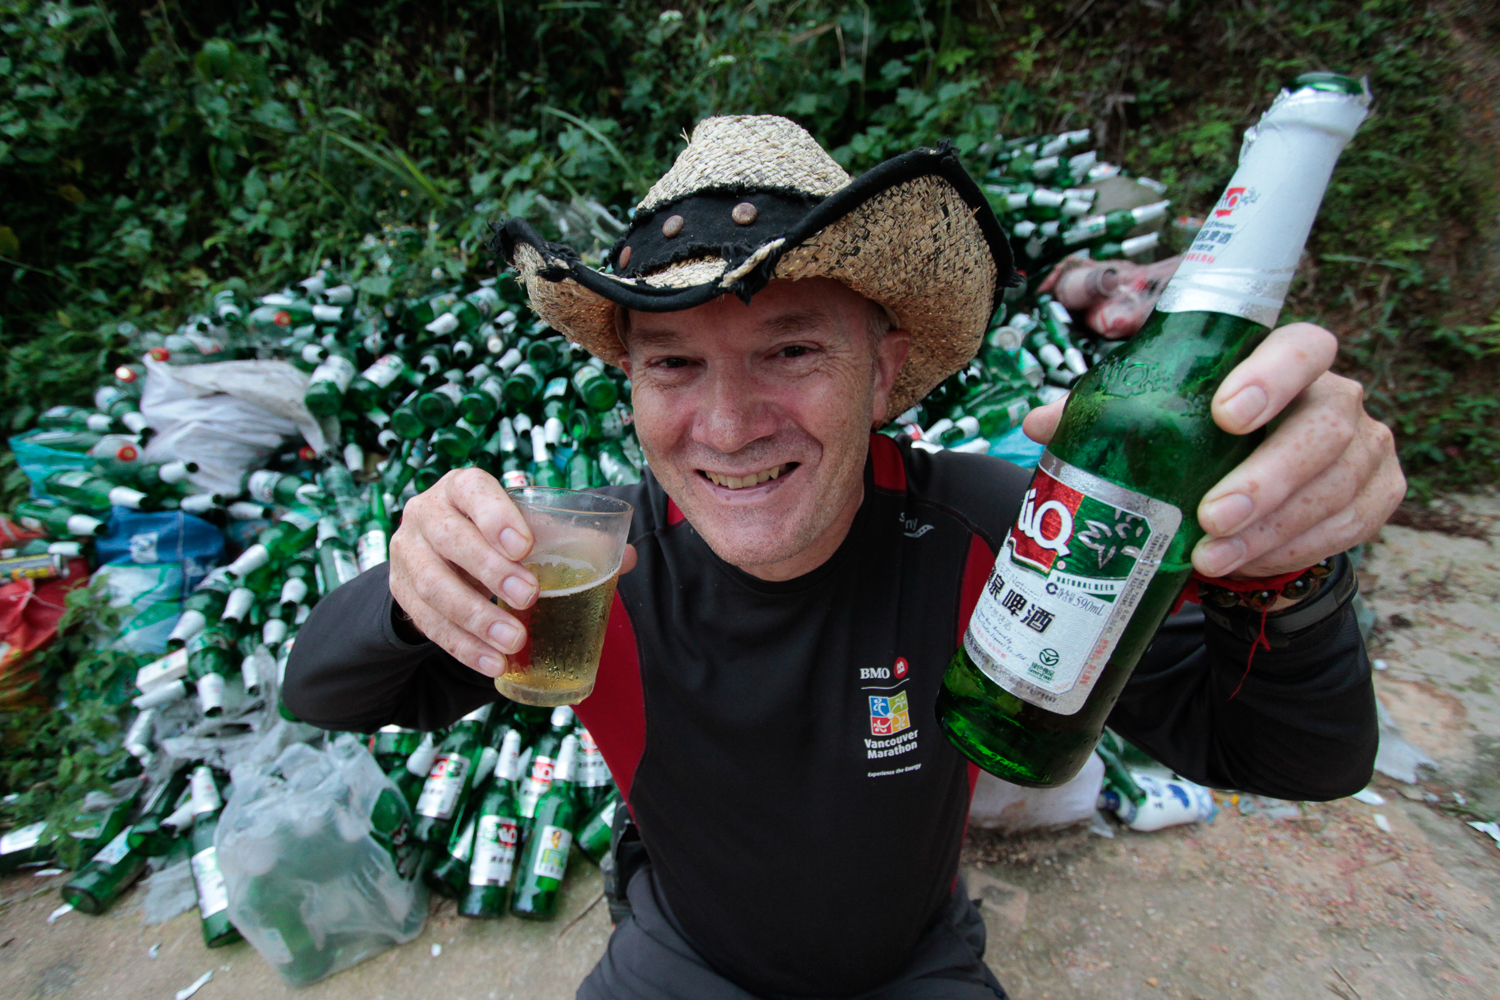 Brian with a LIQ beer after a long Rice Terraces hike (2010)